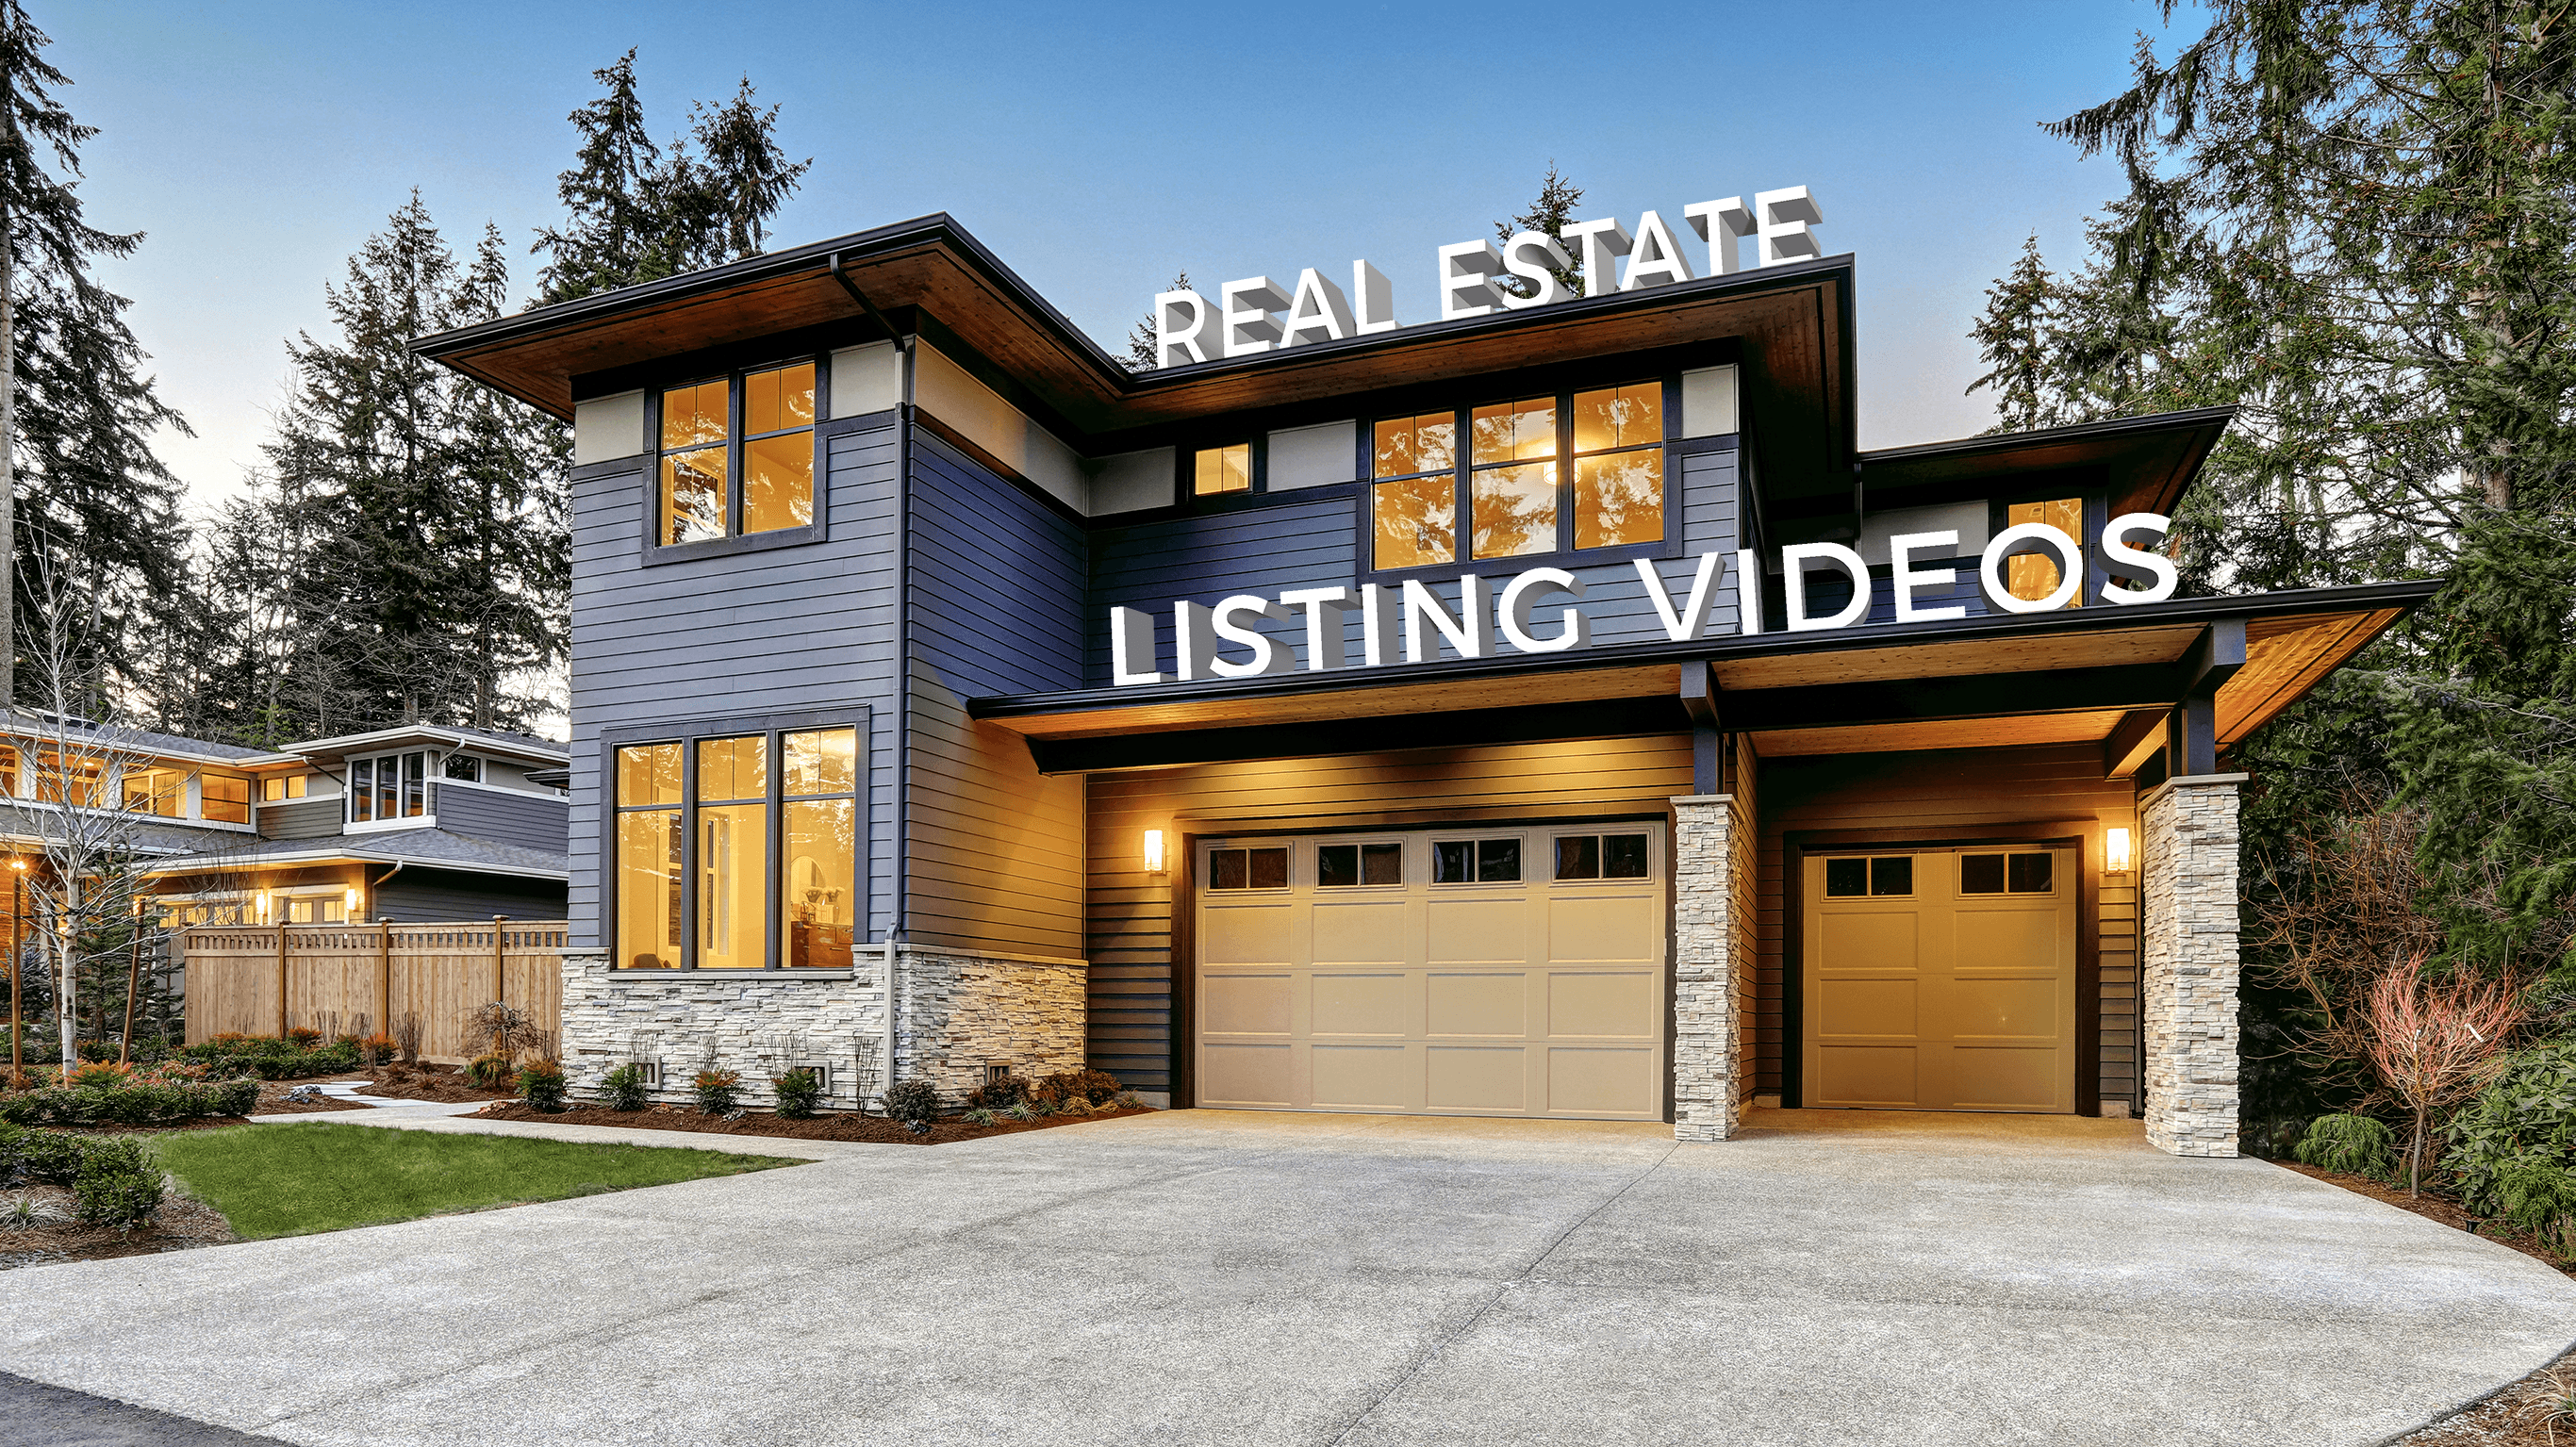 Real Estate listing videos